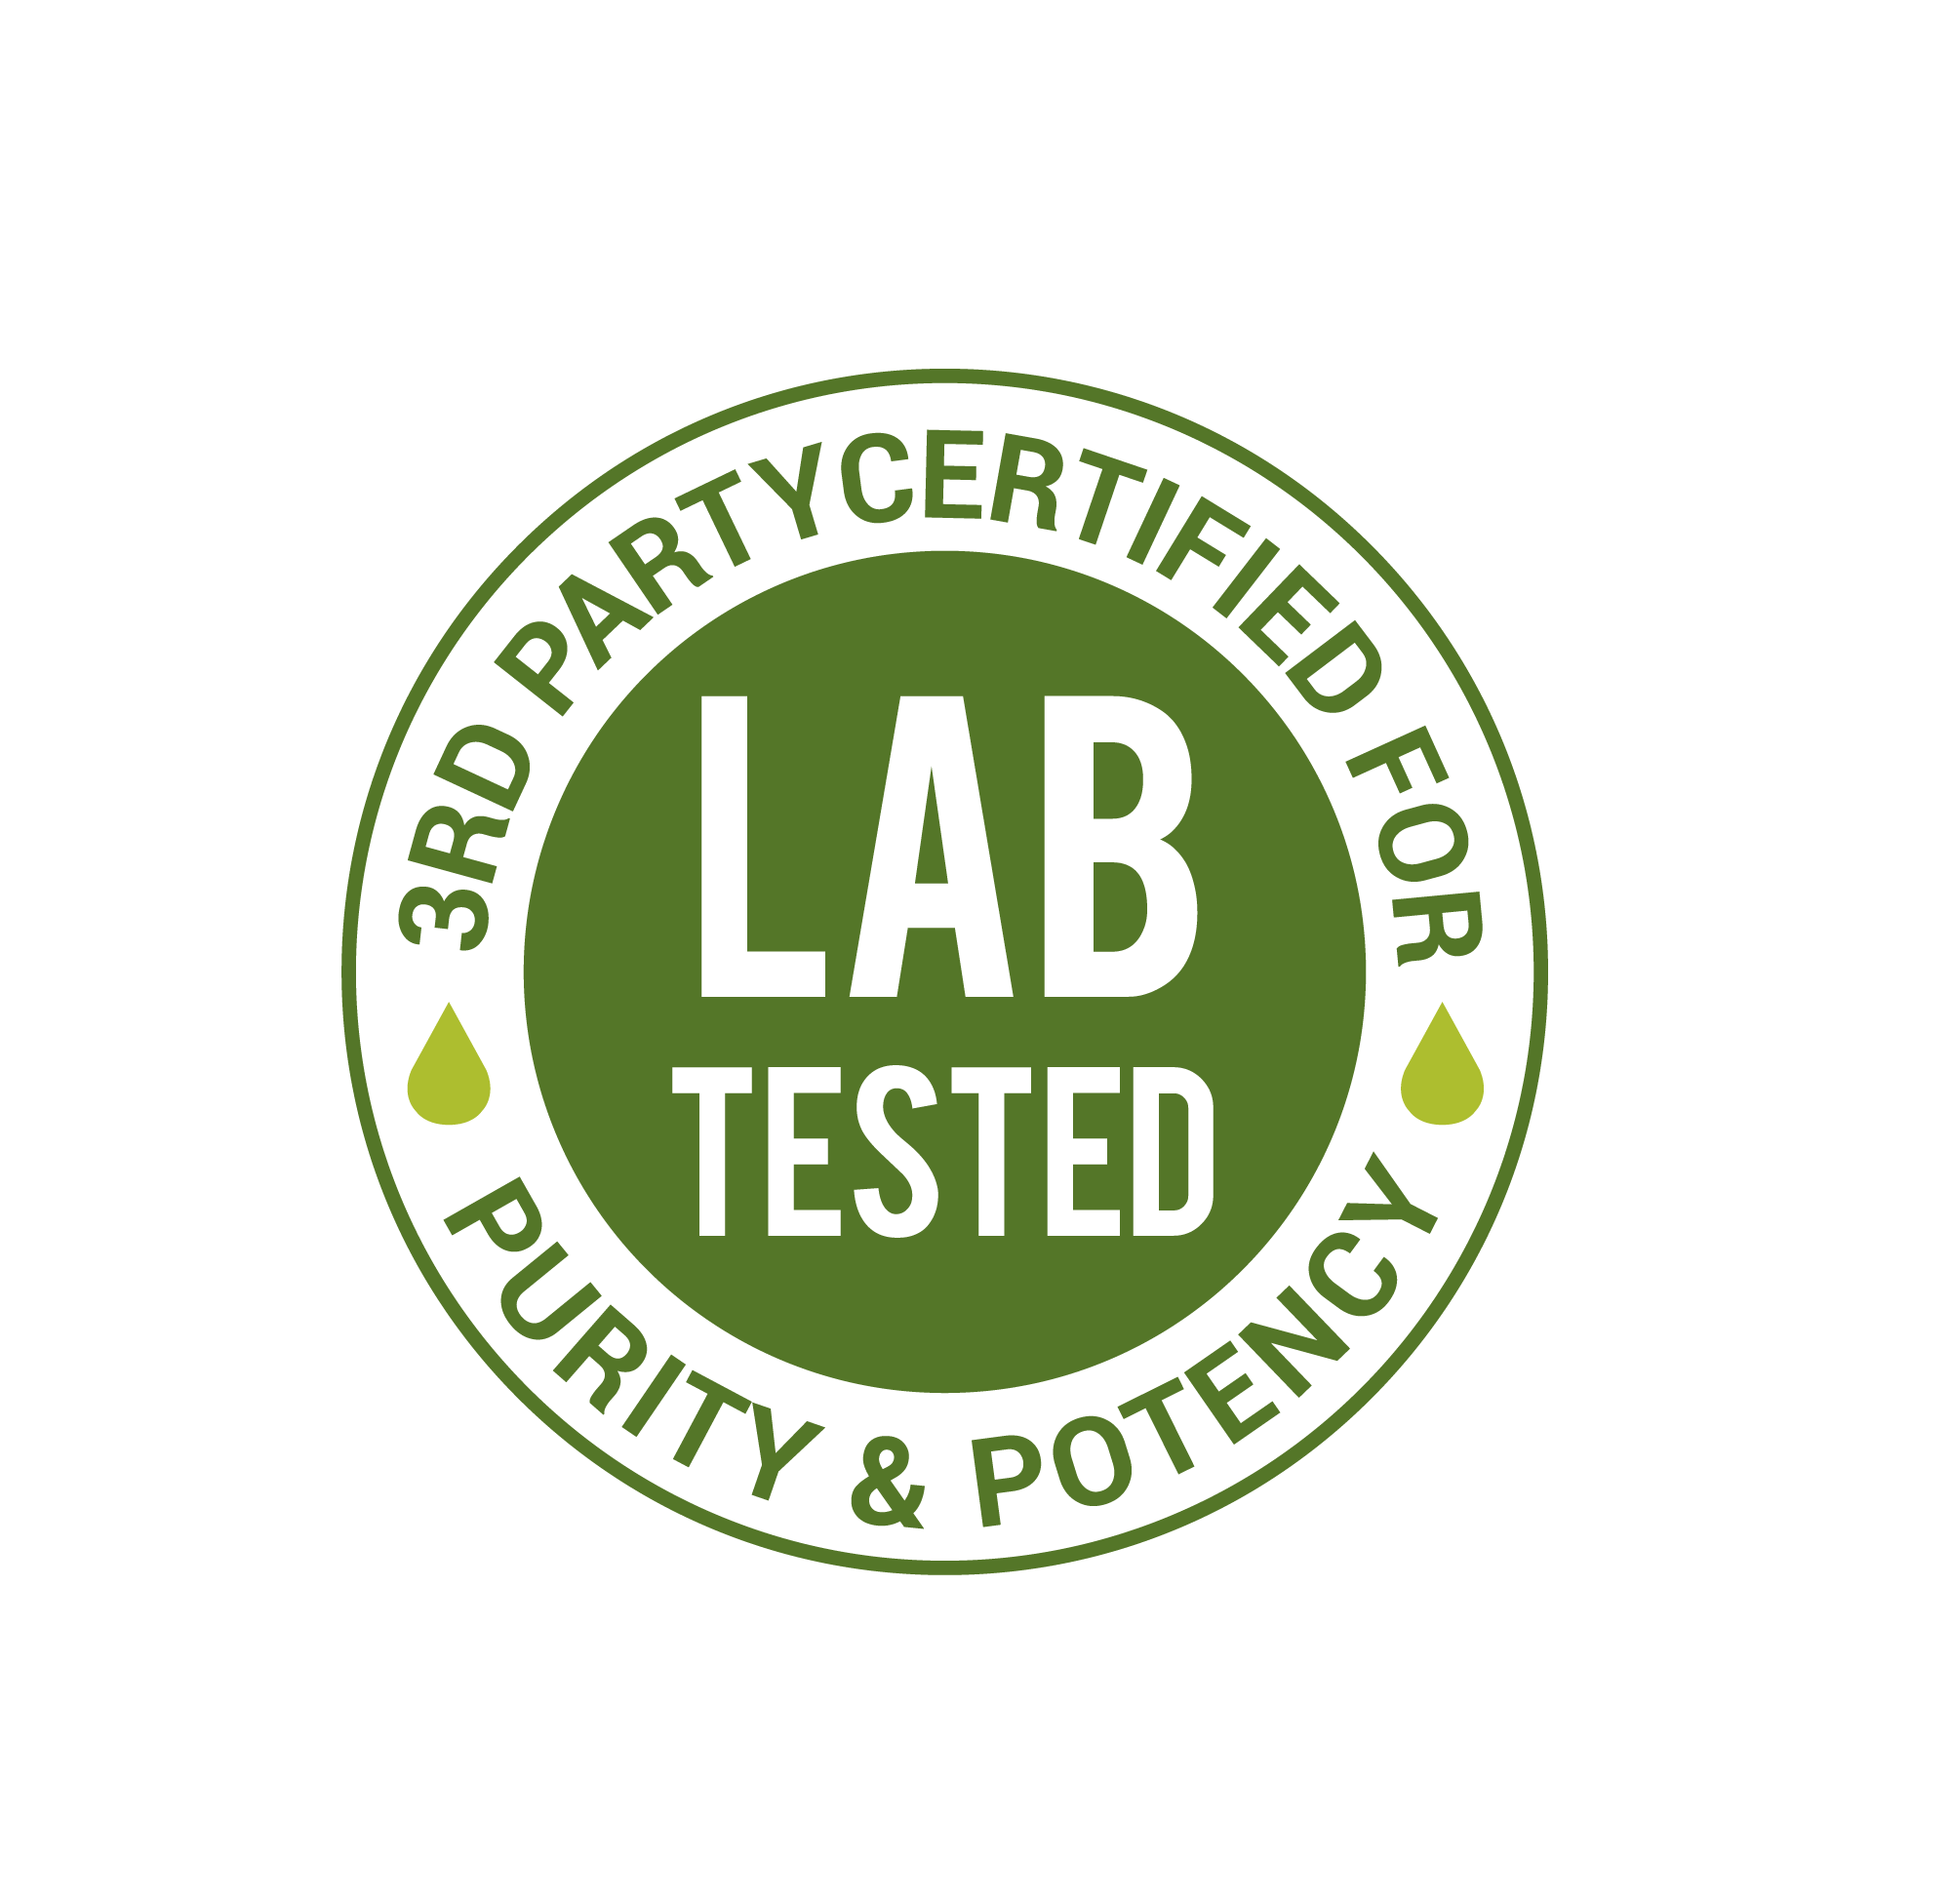 cbd 3rd party certified for purity and potency